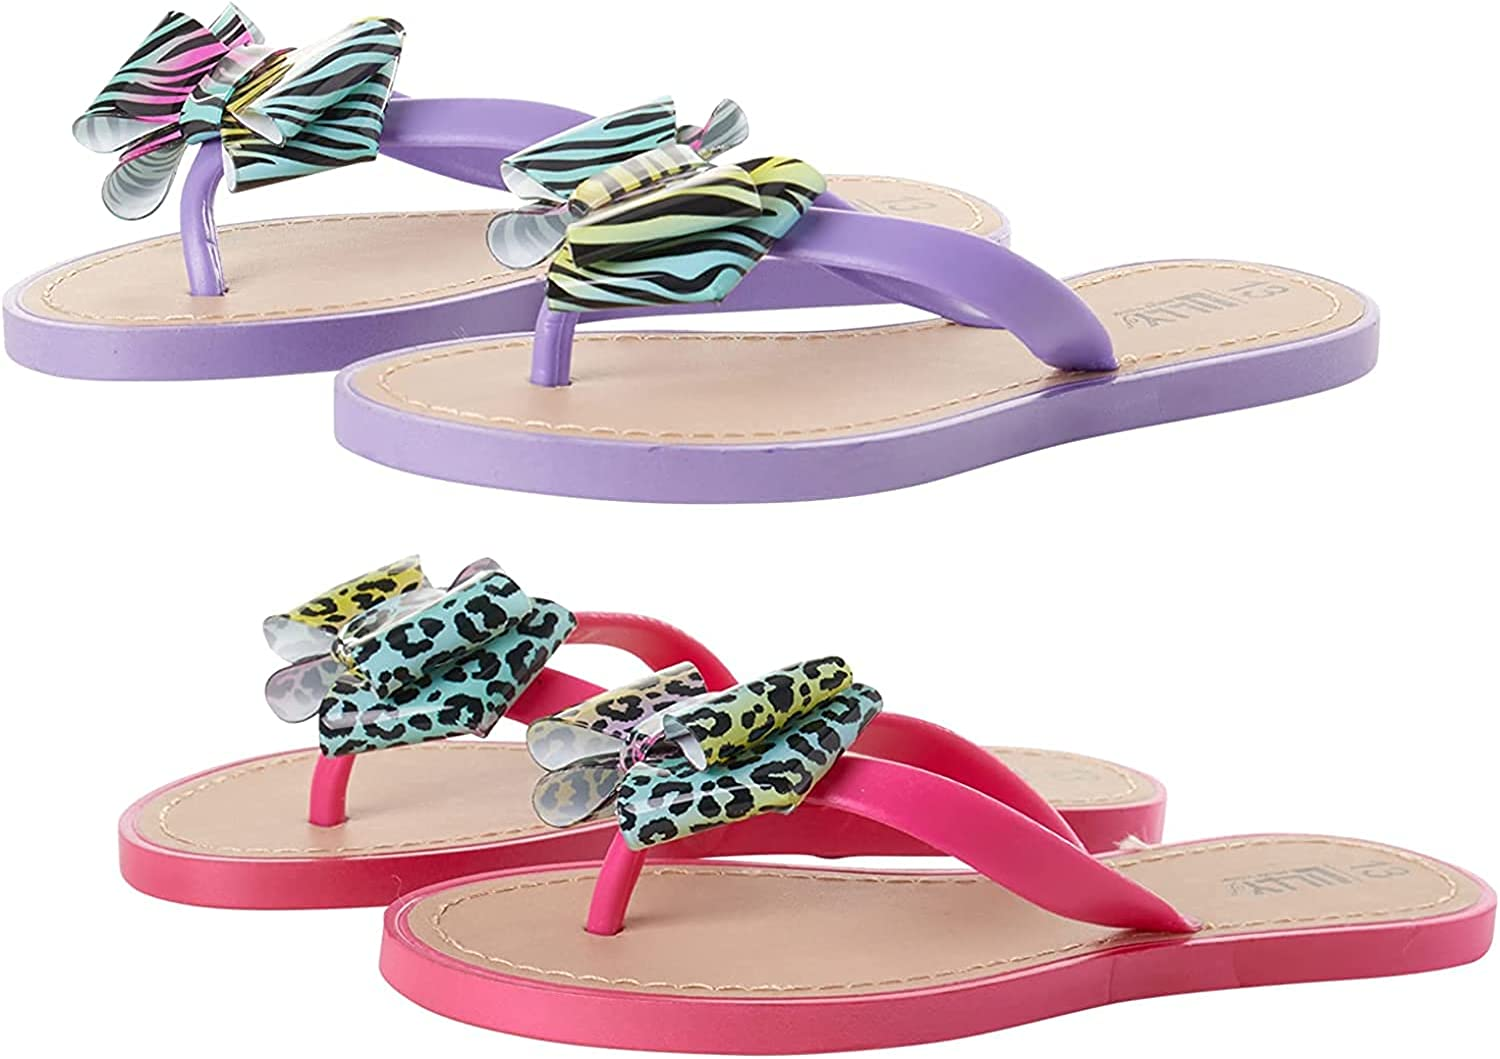 Lilly of New York Toddler Girls' Sandals - Thong Flip Flops with Bow and Heel Strap (2 Pack)